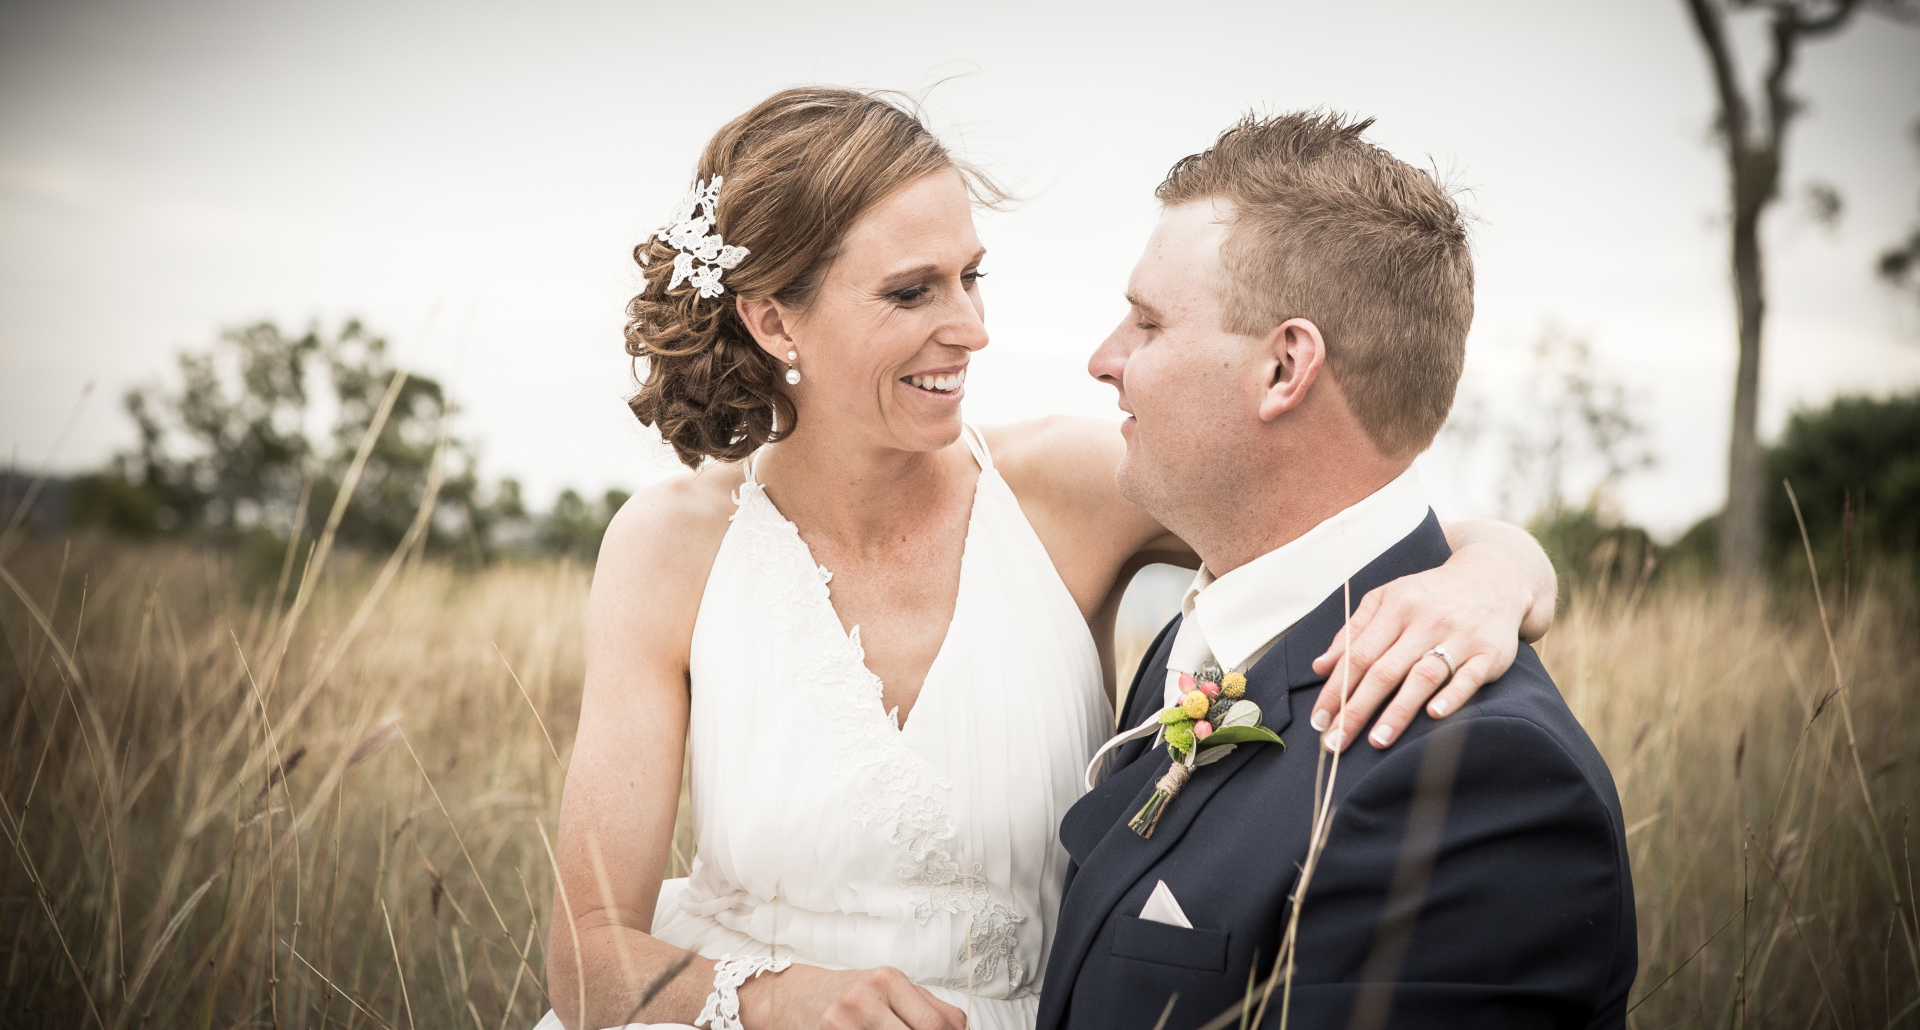 Allister & Jodi | Toowoomba Surrounds | Toowoomba Wedding Photographer